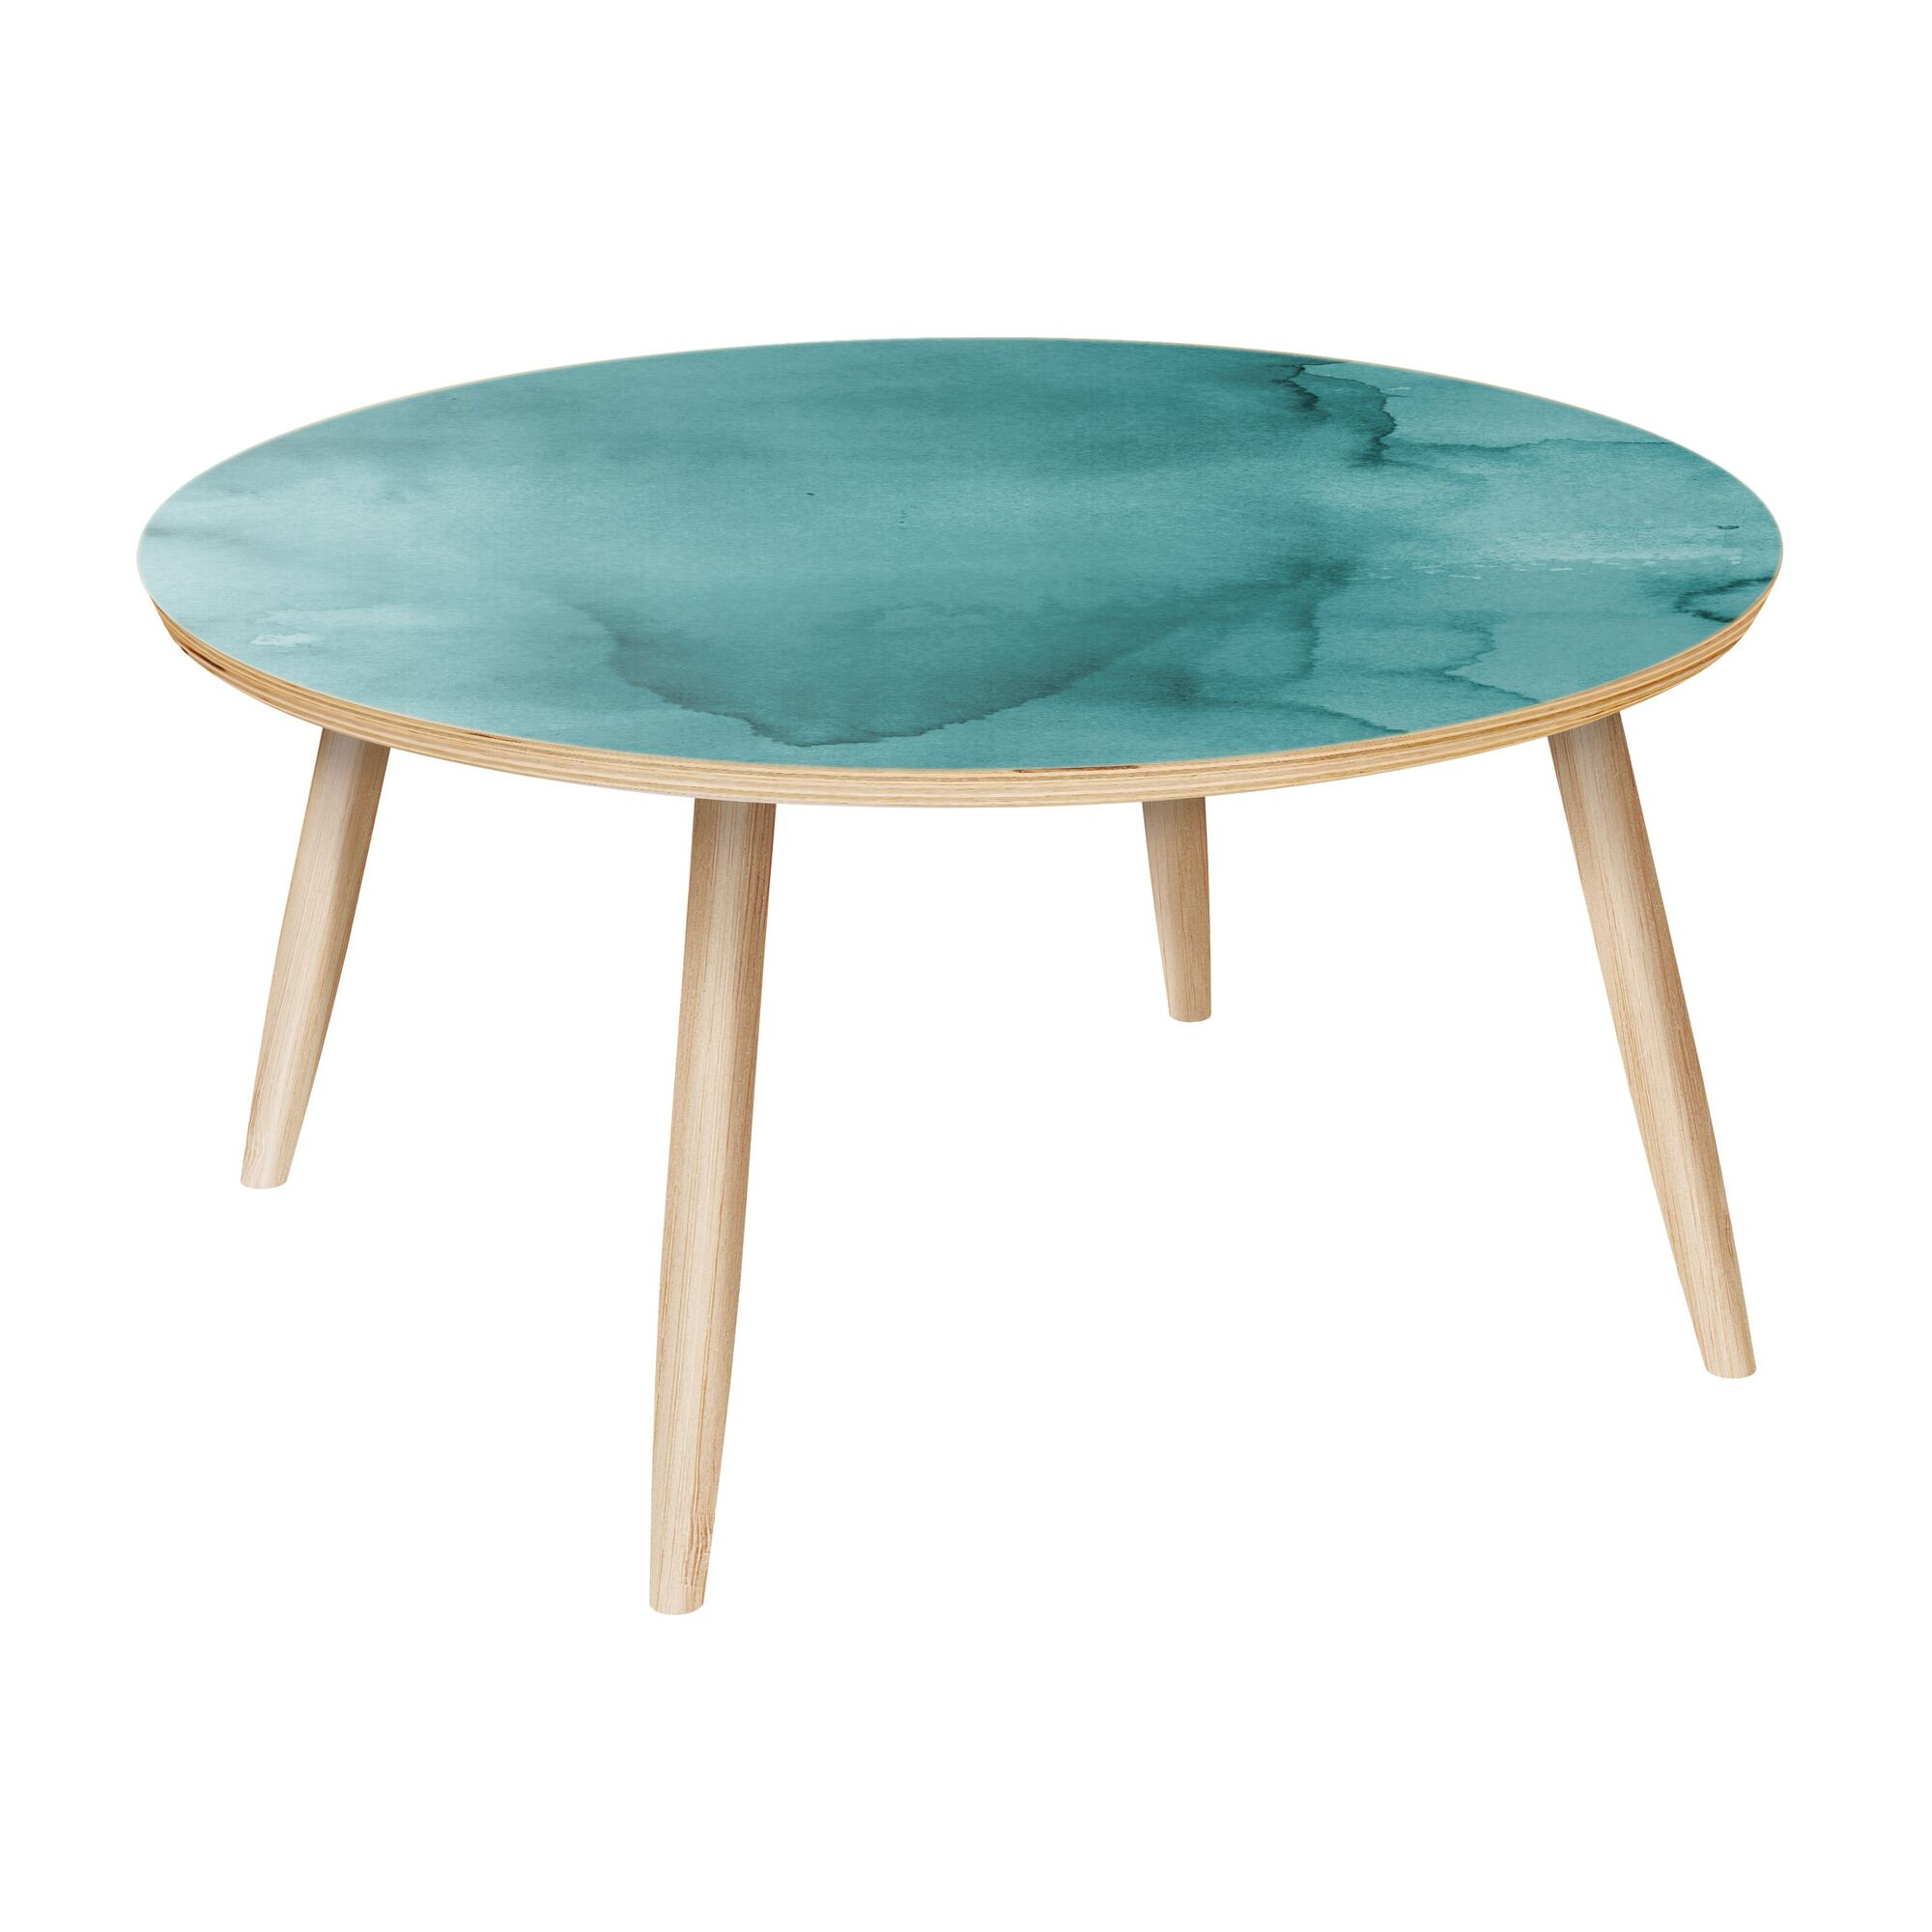 Madeira Coffee Table Table Base Color: Natural, Table Top Color: Turquoise